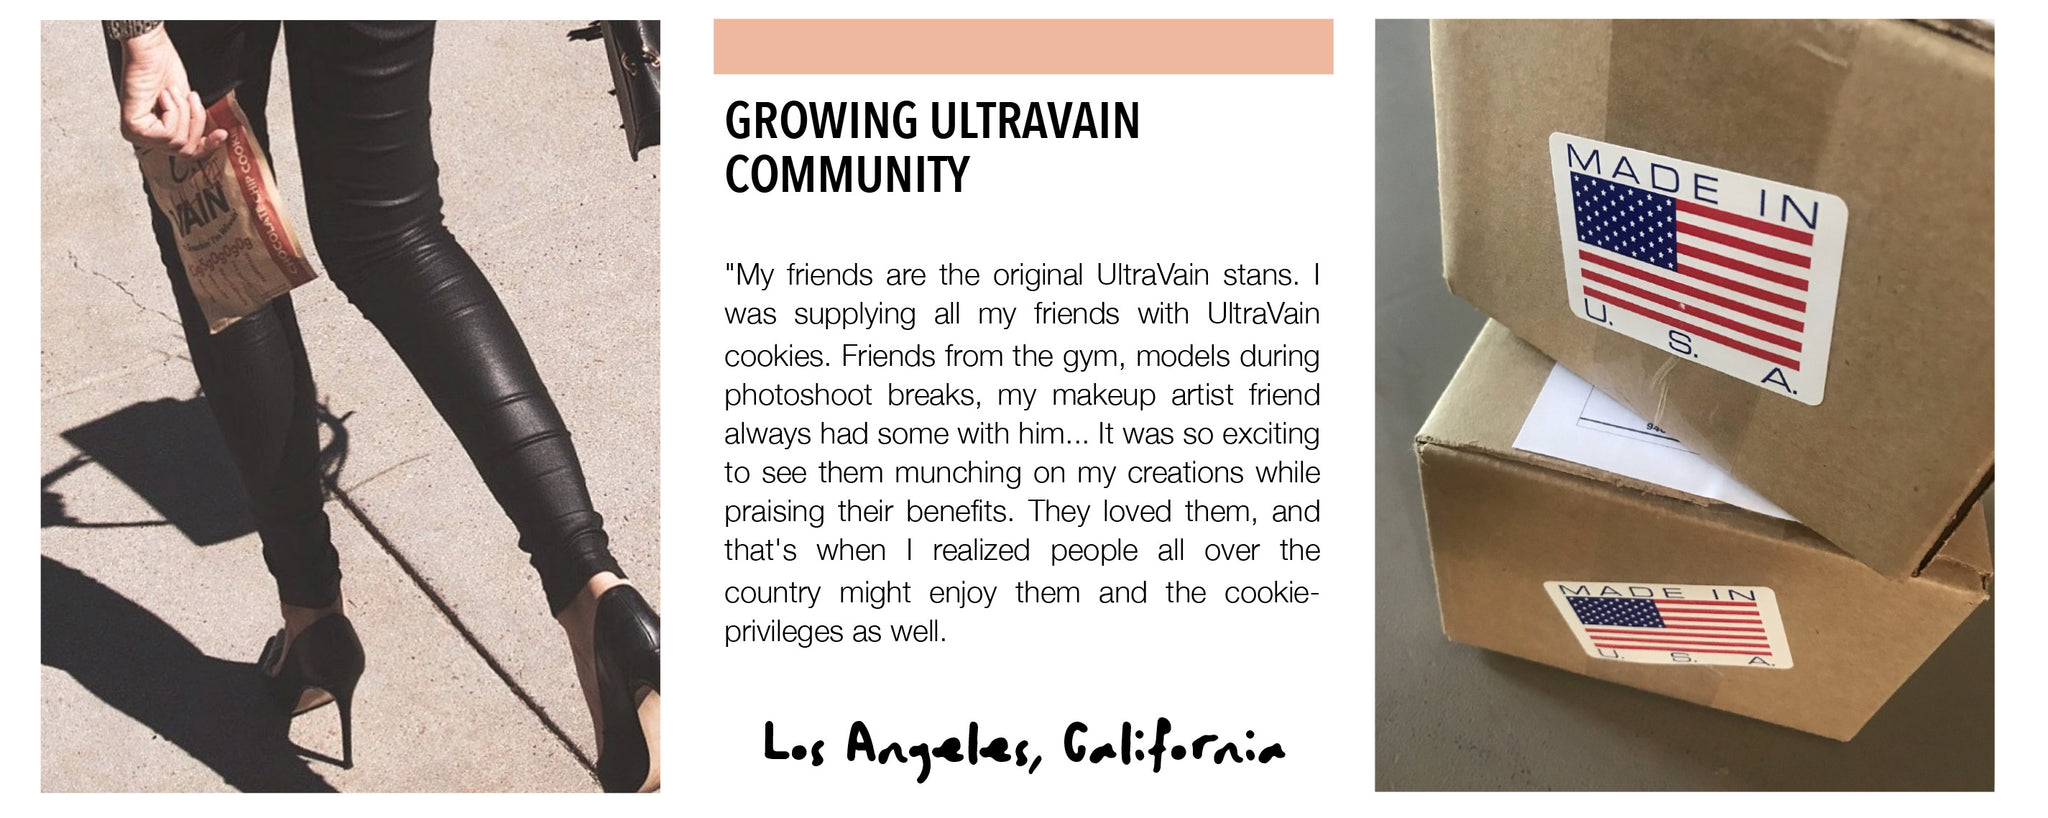 """My friends are the original UltraVain stans. I was supplying all my friends with UltraVain cookies."